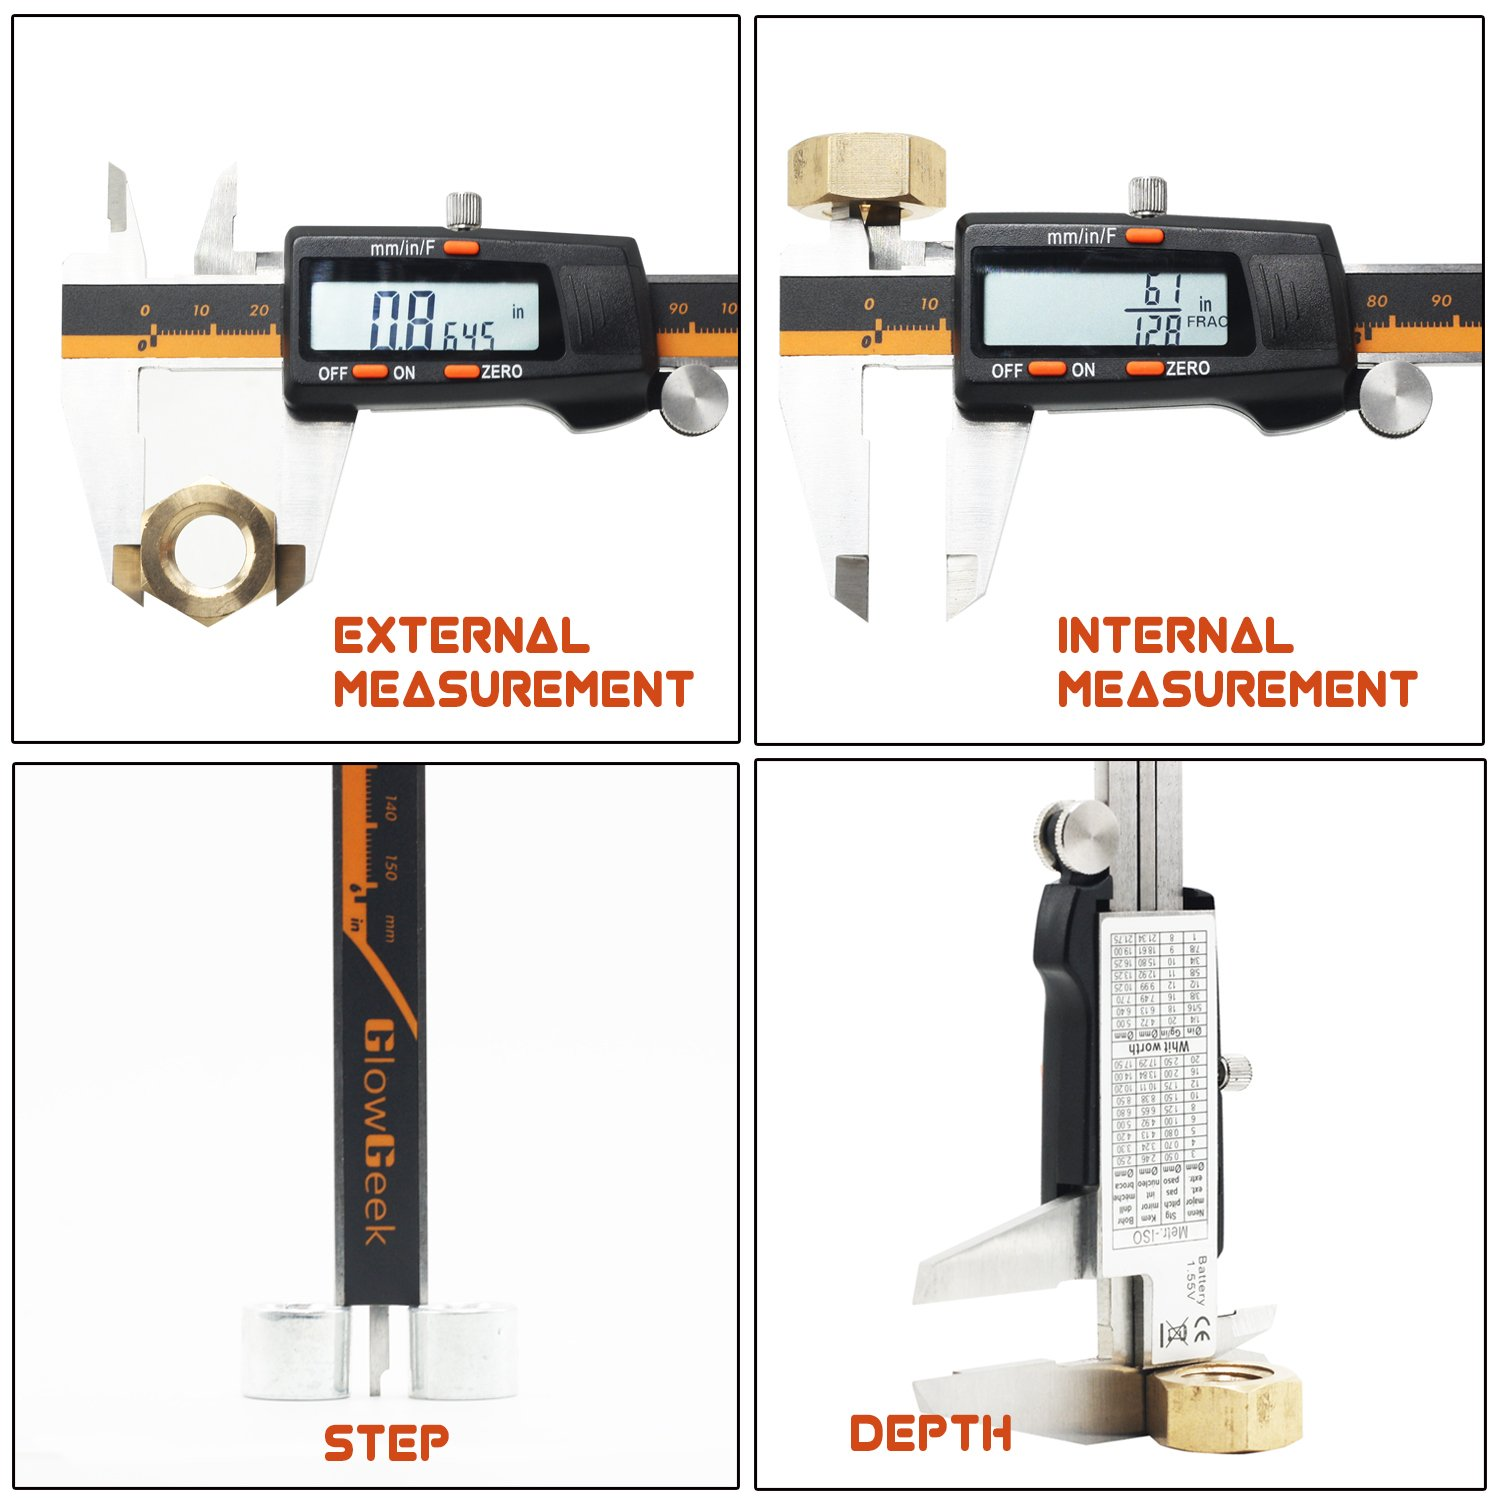 GlowGeek Electronic Digital Caliper Inch/Metric/Fractions Conversion 0-6 Inch/150 mm Stainless Steel Body Orange/Black Extra Large LCD Screen Auto Off Featured Measuring Tool by GlowGeek (Image #3)